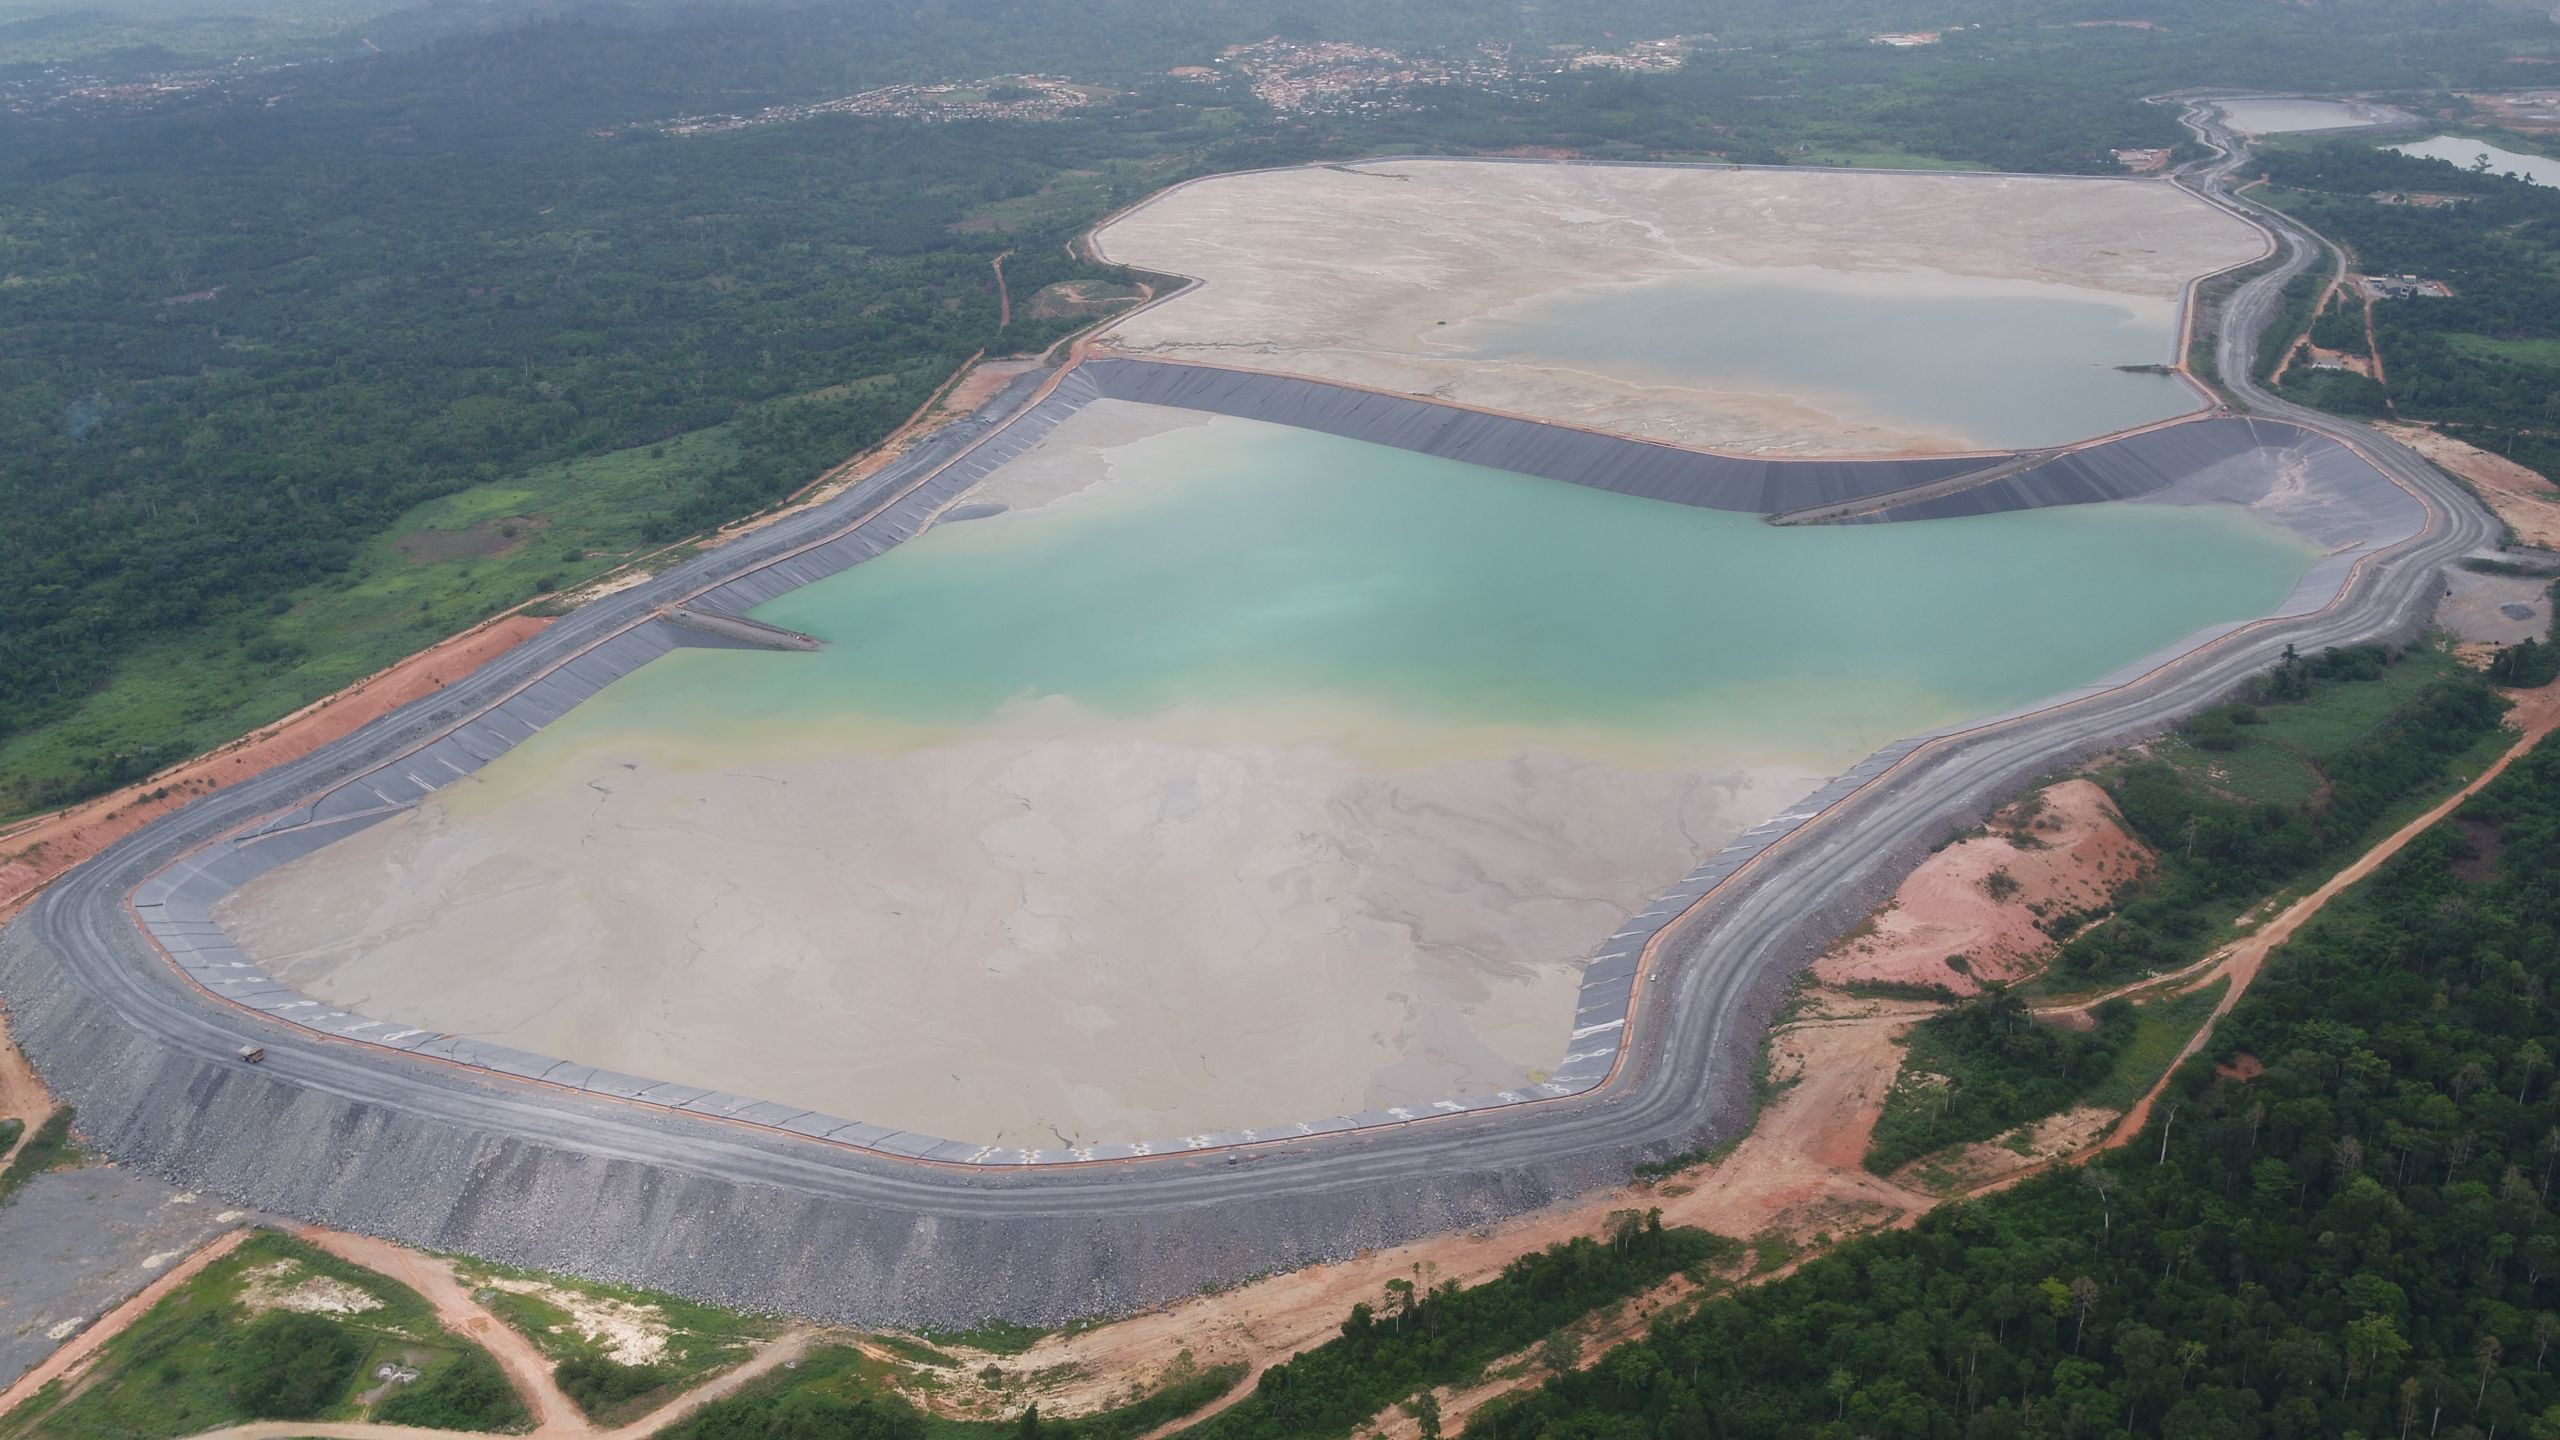 Find out about Newmont's approach to tailings management